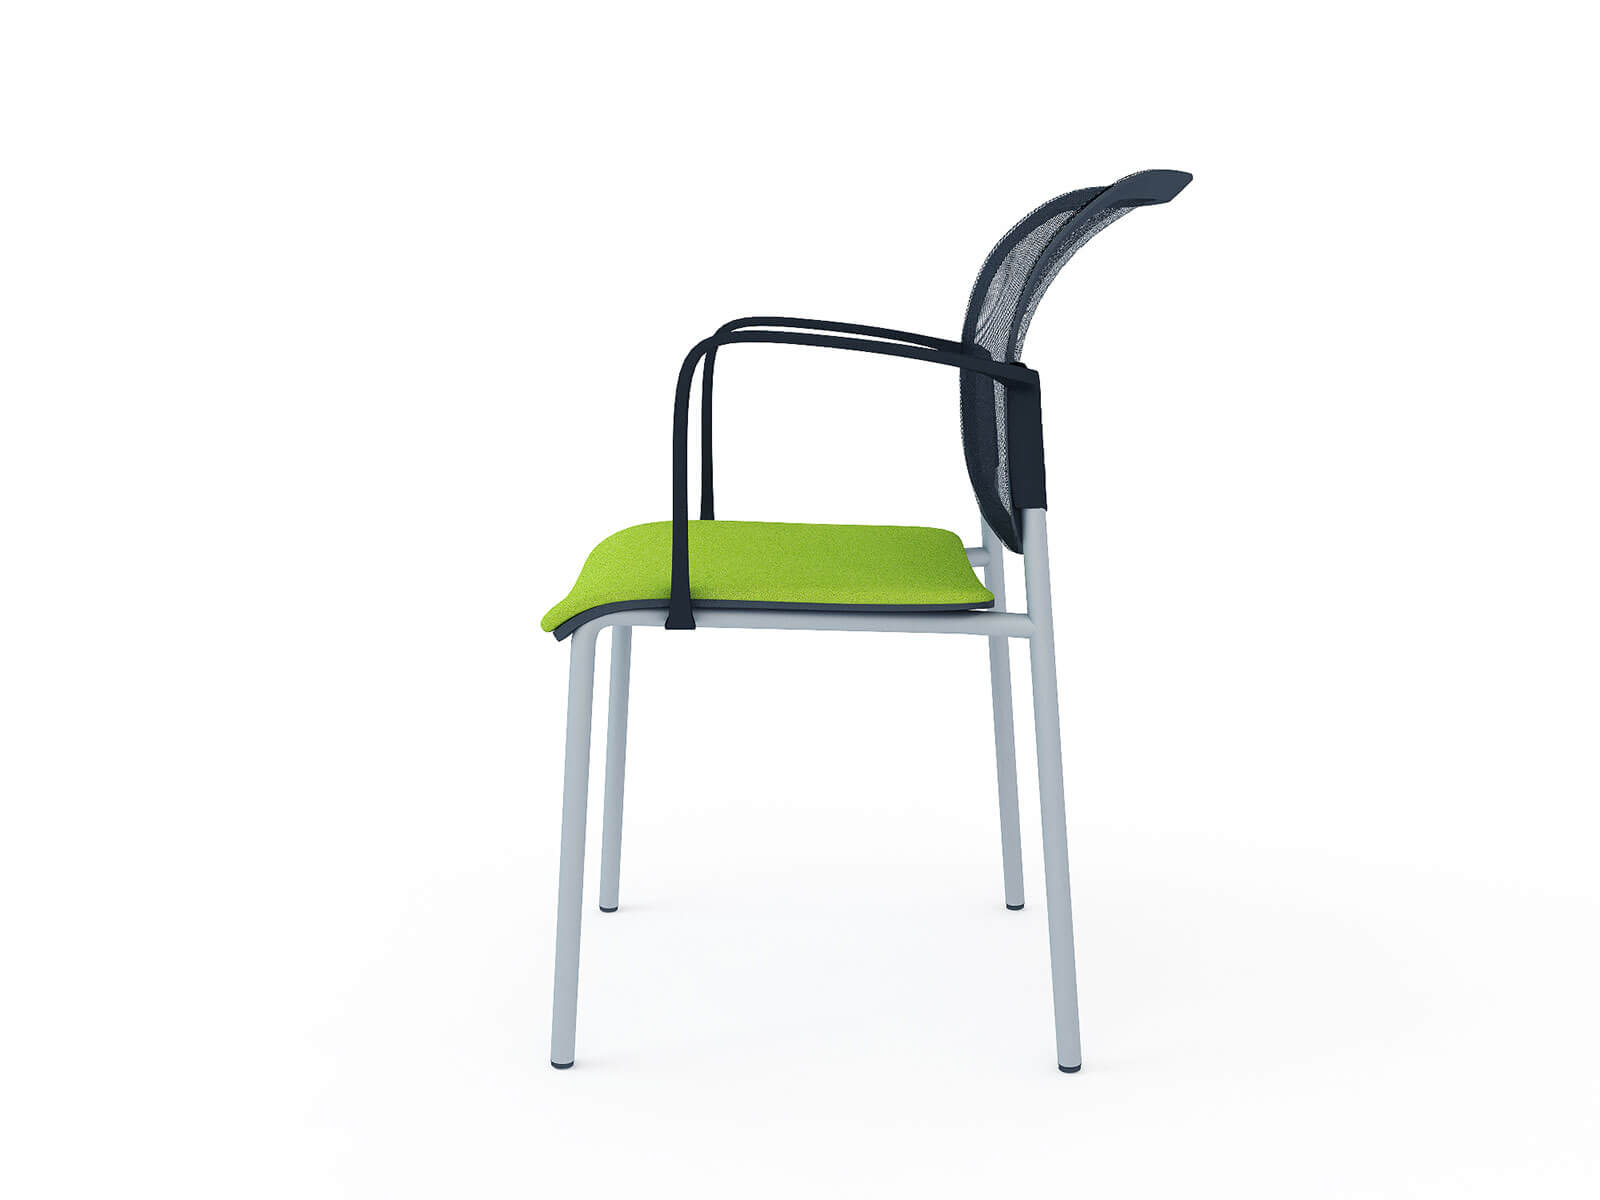 3D model of Choose office chair, 3D visualisation, London, UK.